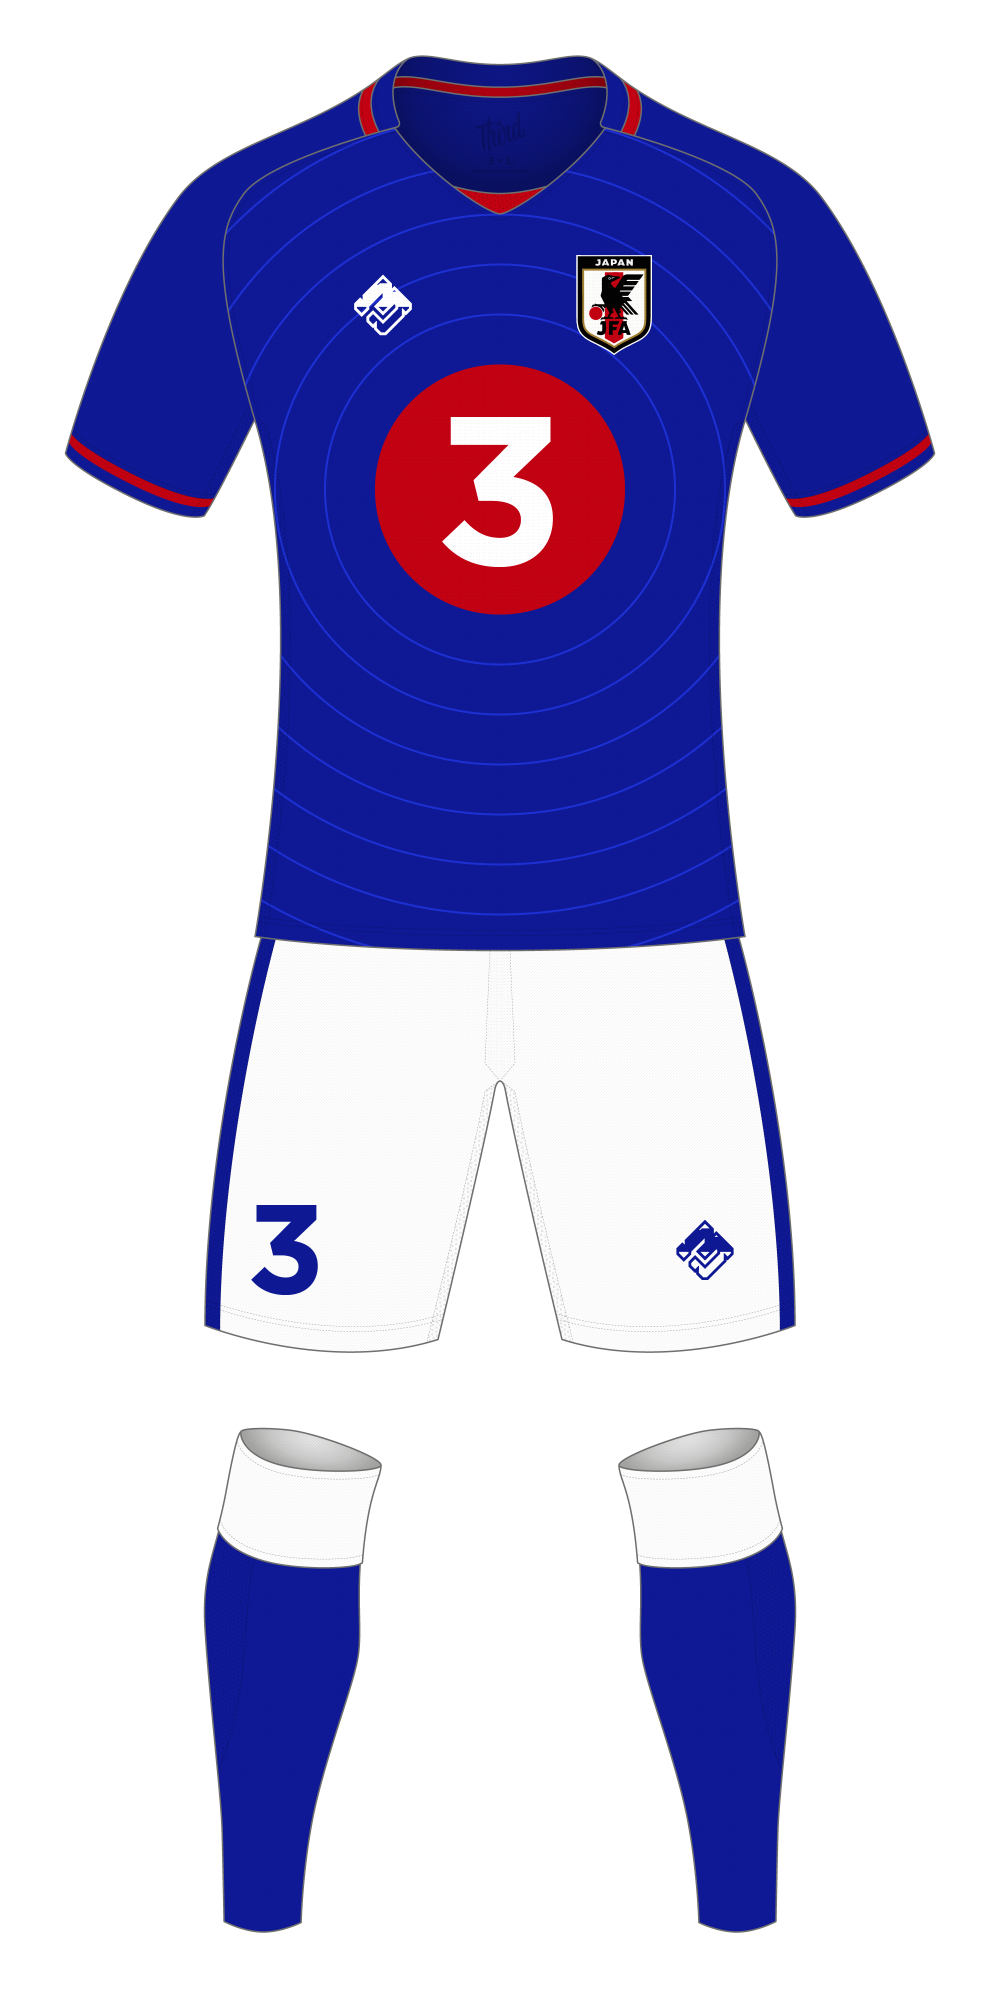 Japan World Cup 2018 concept